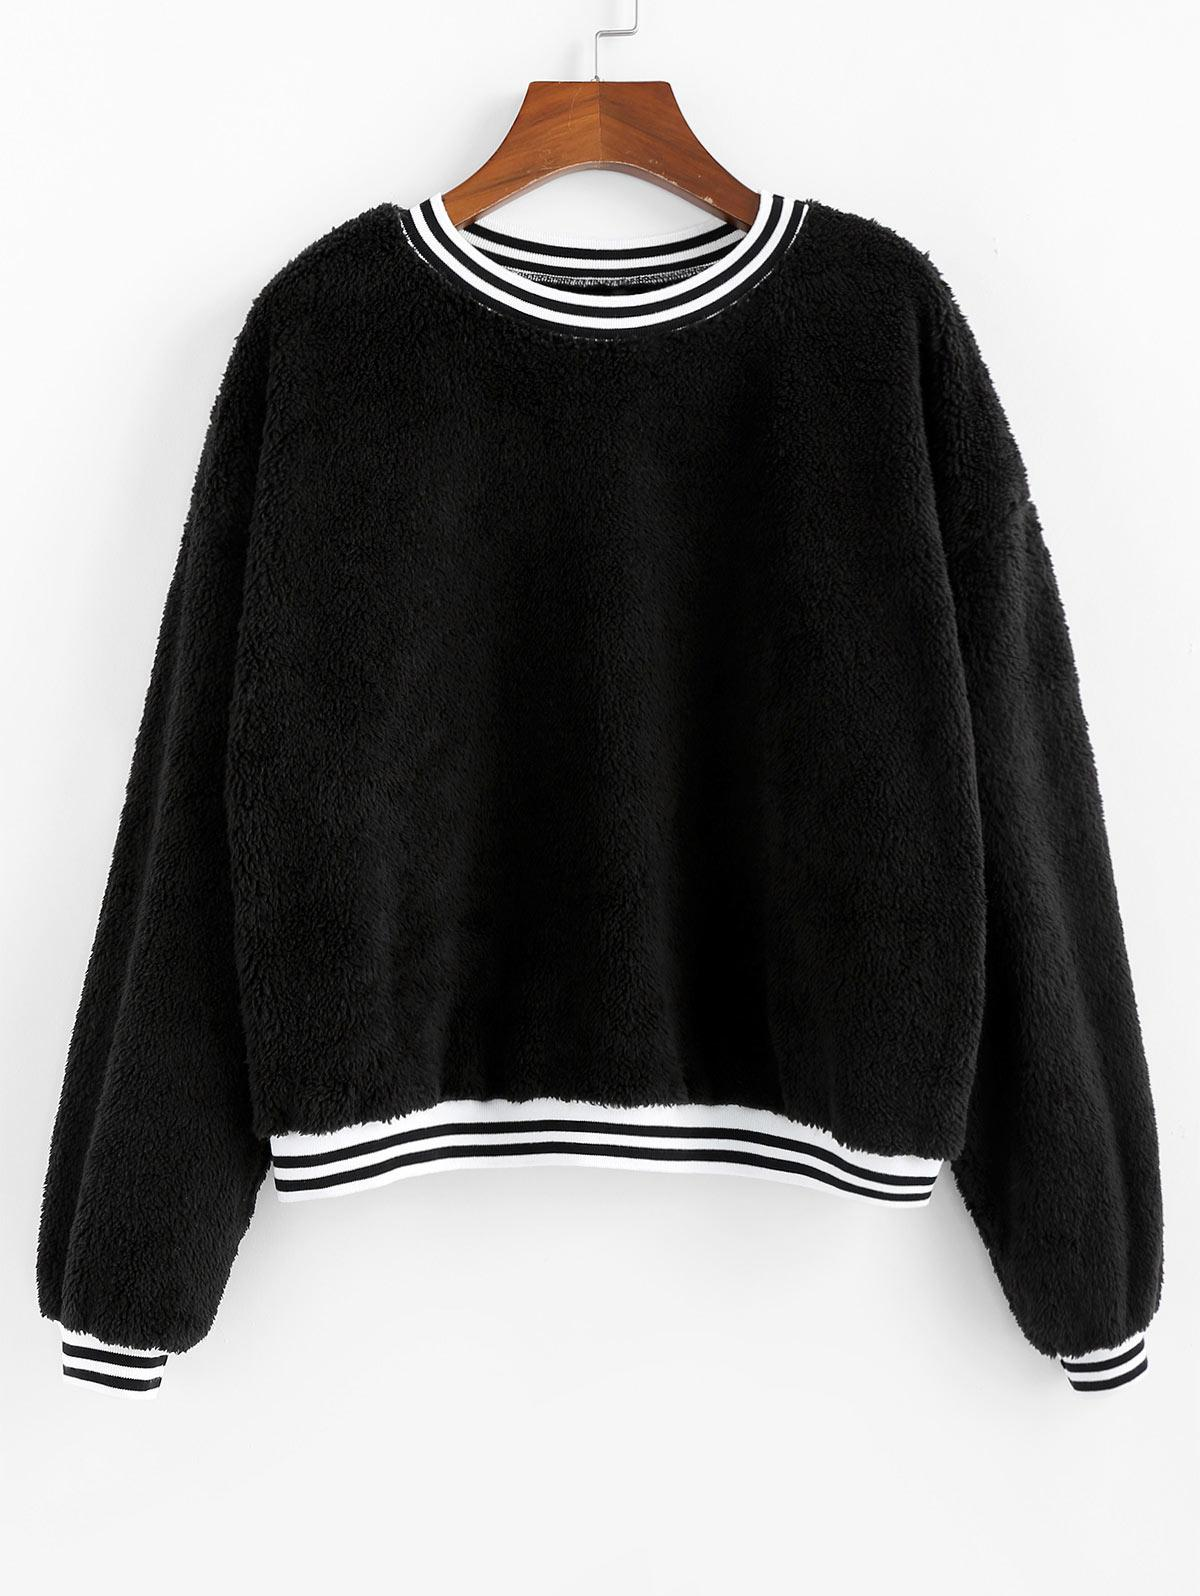 ZAFUL Striped Hem Drop Shoulder Teddy Sweatshirt фото